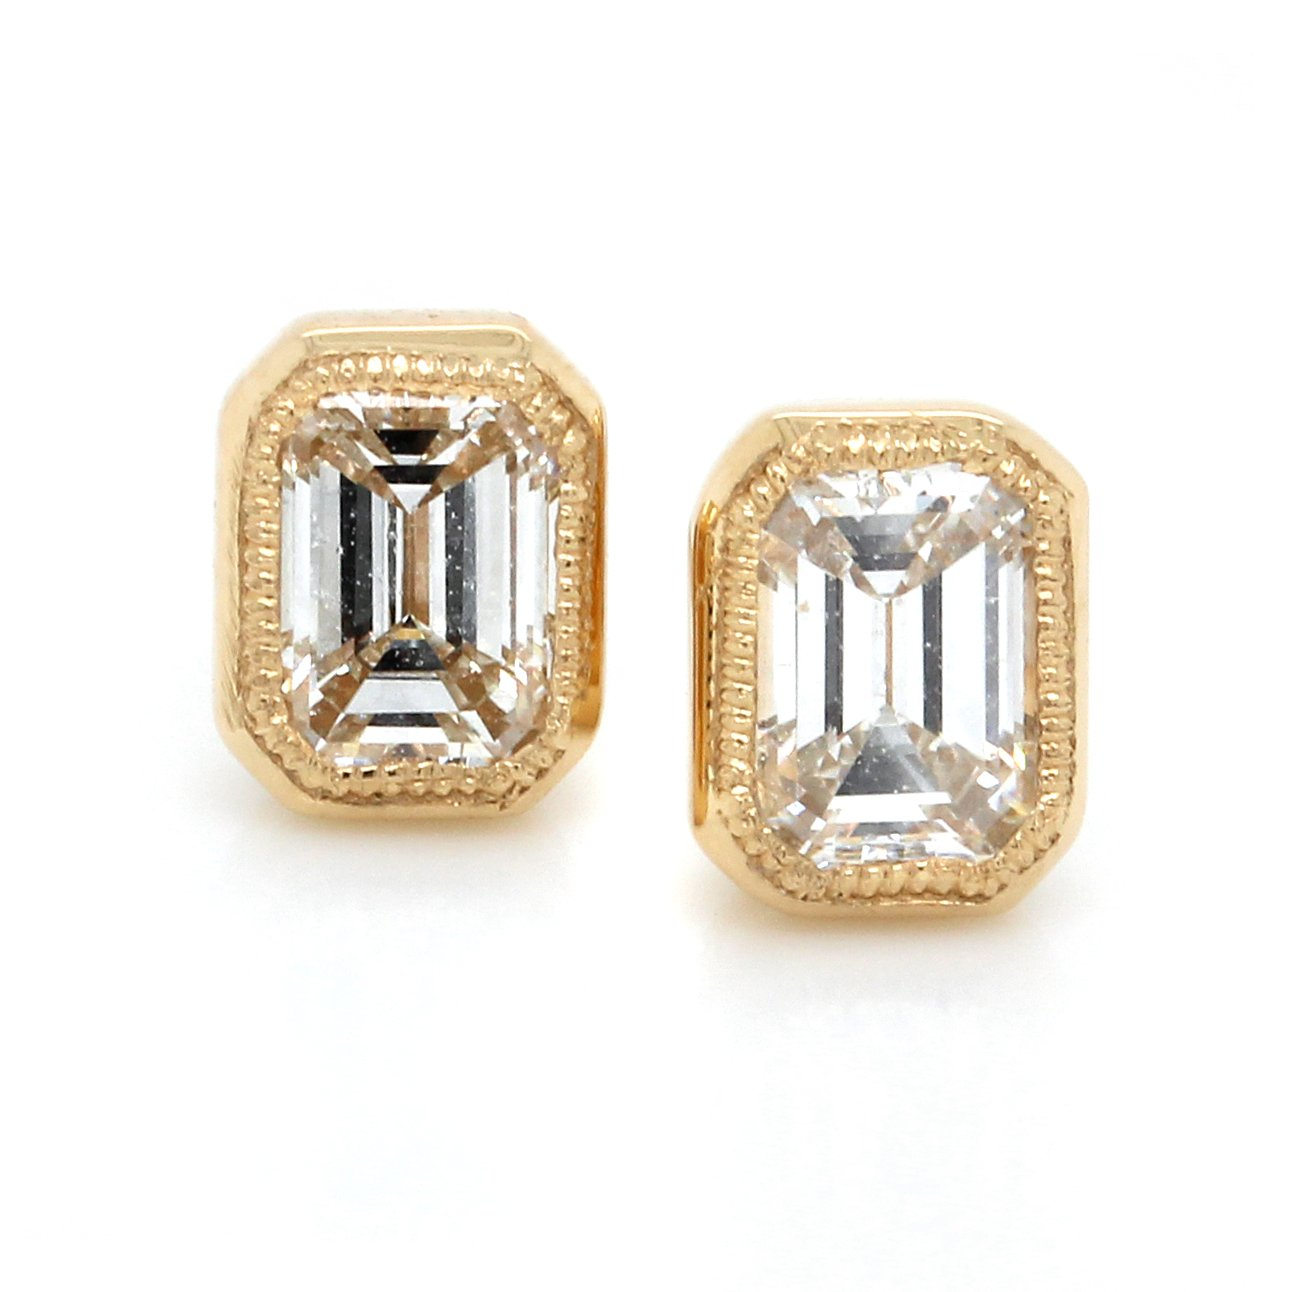 18K Yellow Gold Emerald Cut Diamond Milgrain Stud Earrings